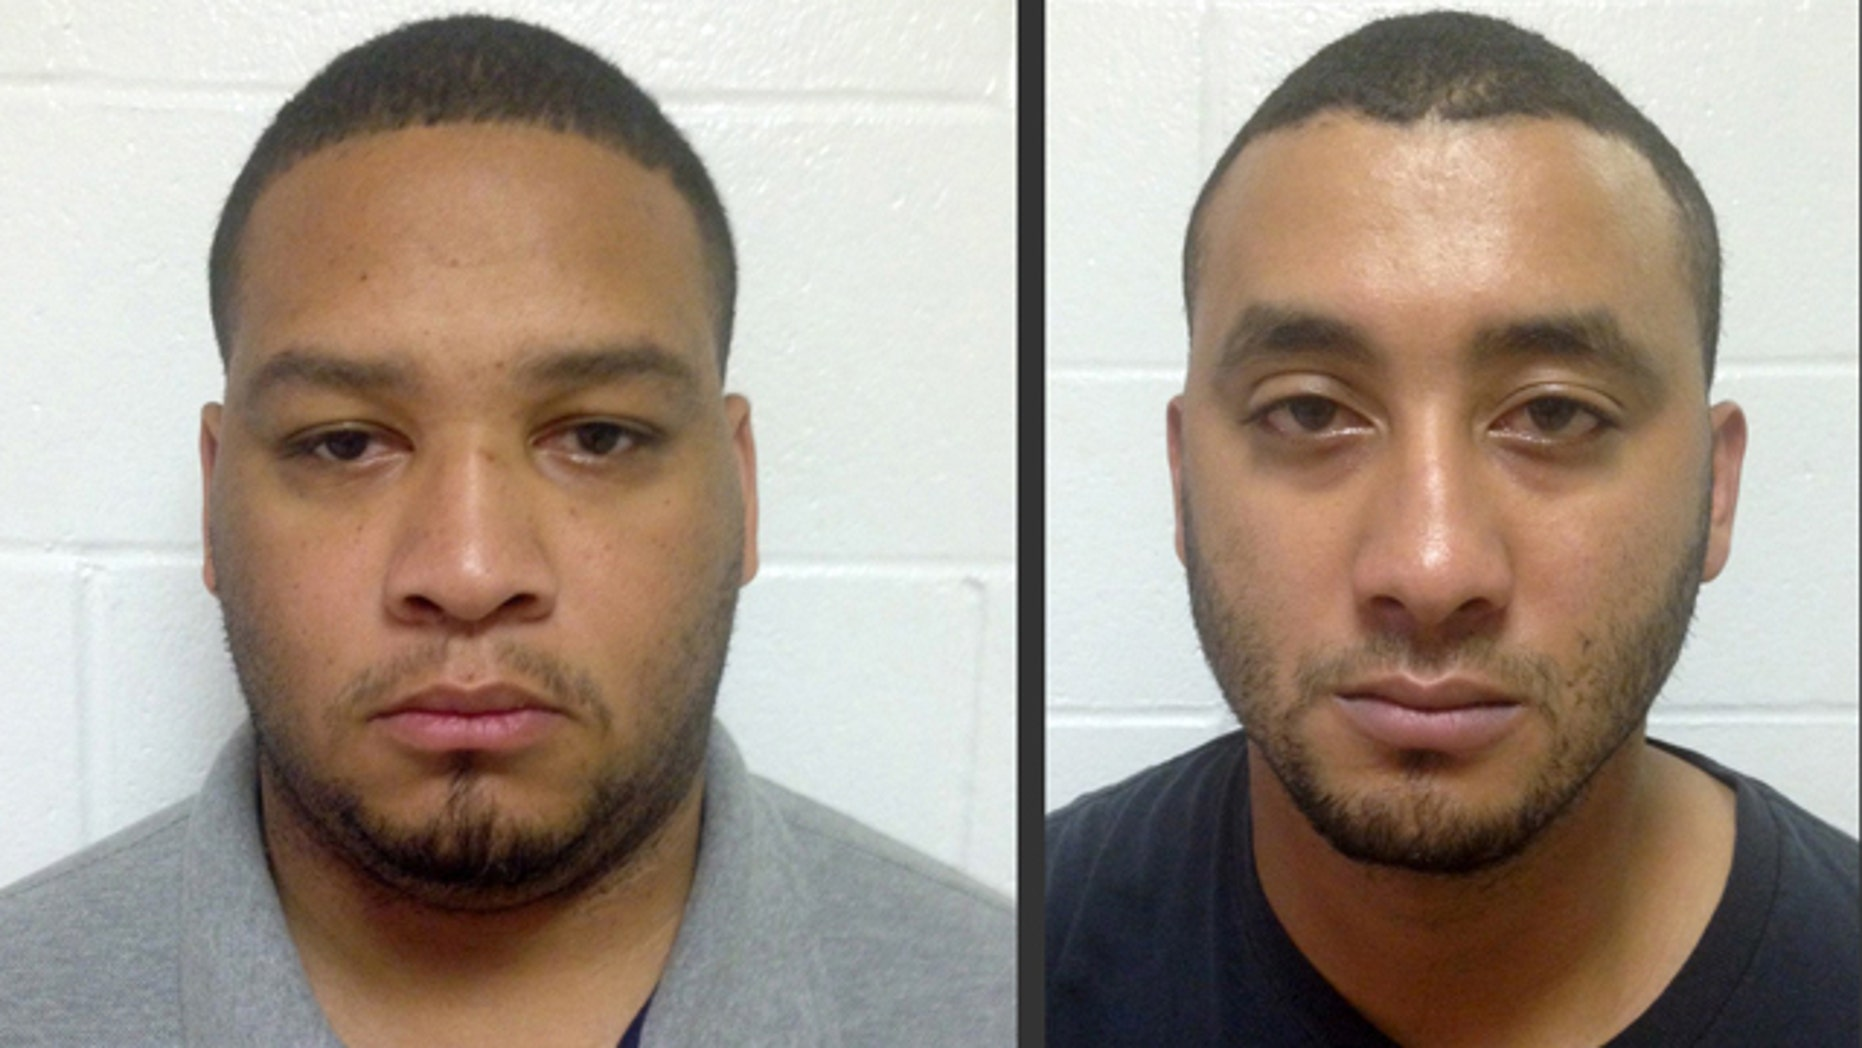 FILE - These undated file booking photos provided by the Louisiana State Police shows Marksville City Marshal Derrick Stafford, left, and Marksville City Marshal Norris Greenhouse Jr. (Louisiana State Police via AP, File)